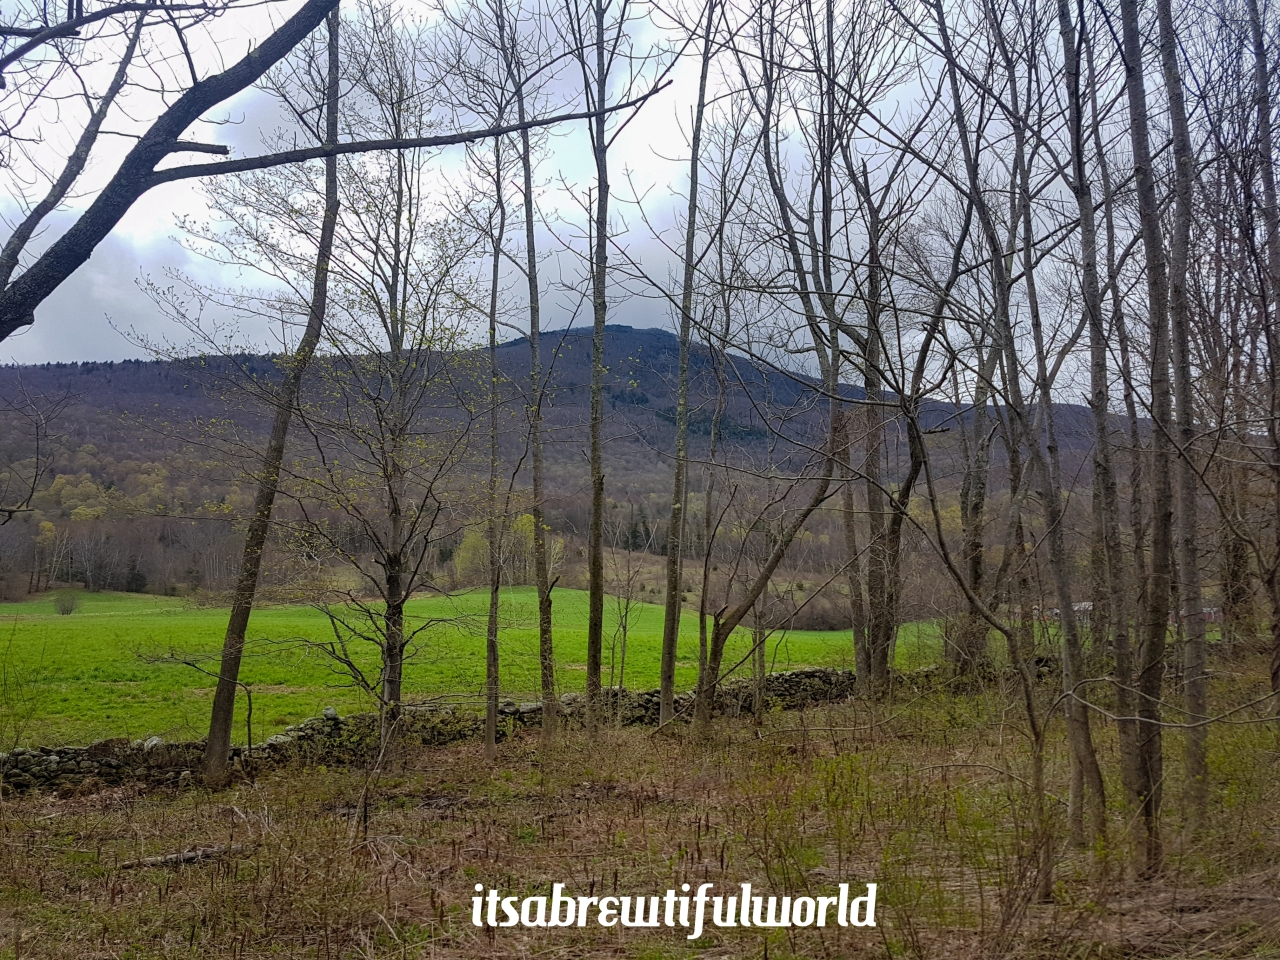 Hike the Brewtifulworld: Mount Greylock